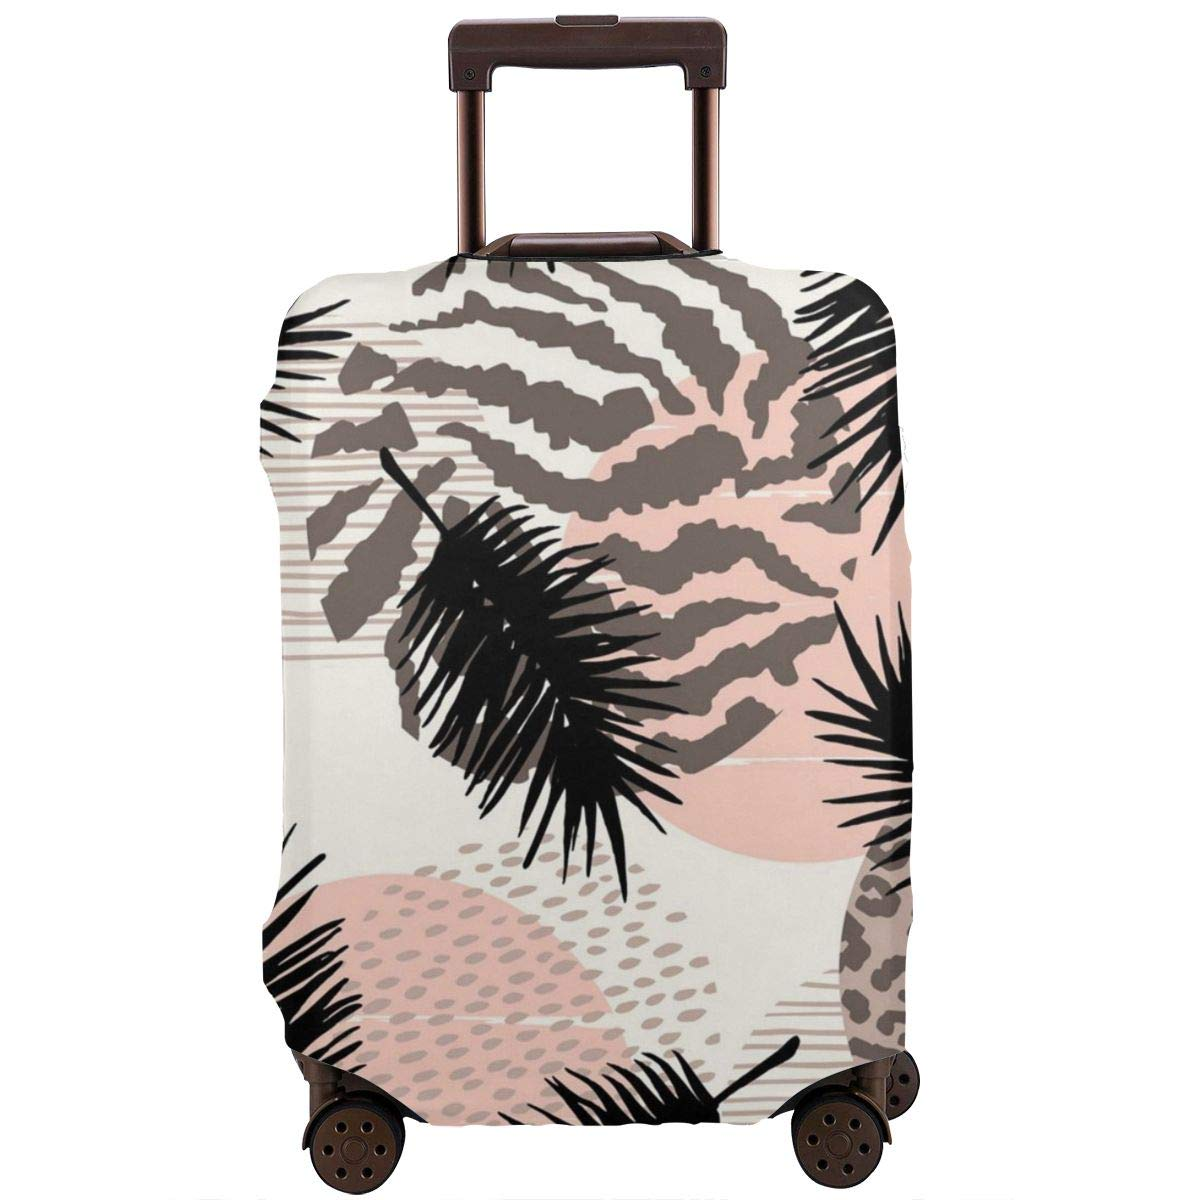 JHNDKJS Plants Seamless Print 3 Travel Luggage Cover Baggage Suitcase Protector Fit for 12-18 Inch Luggage